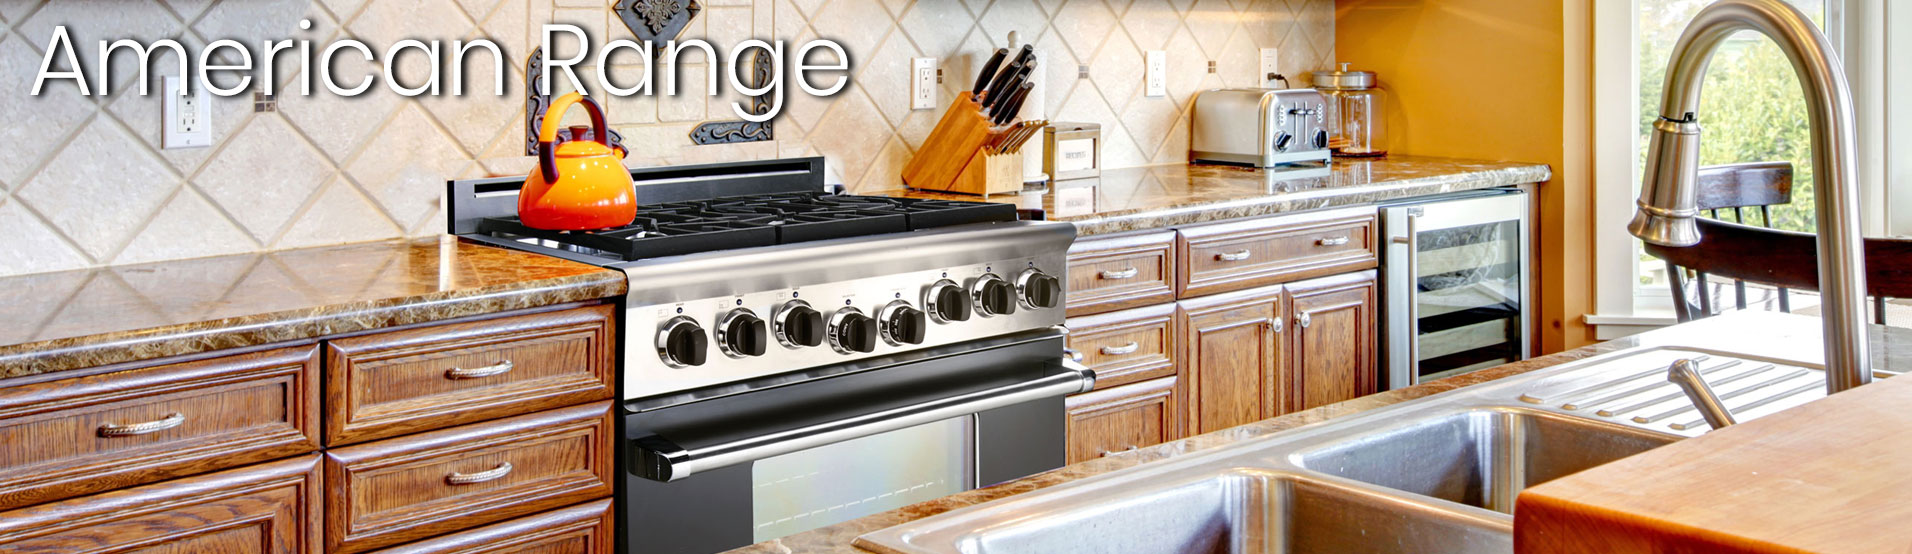 American Range Custom Color Appliances at Appliances Connection